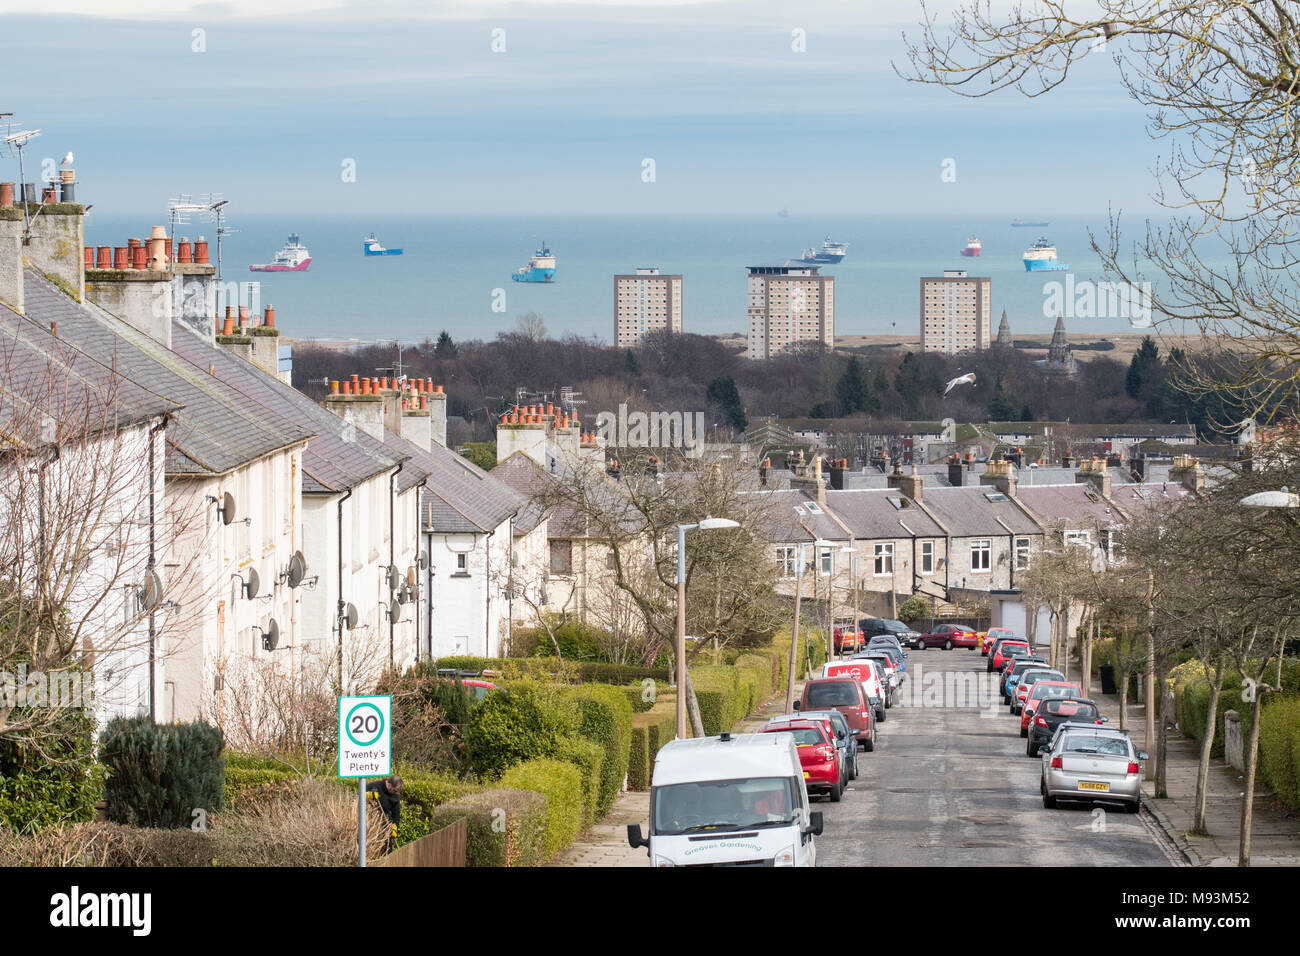 view of residential area of Aberdeen, north of the city centre - property housing types and Seaton Park, with waiting supply vessels at anchor - Stock Image